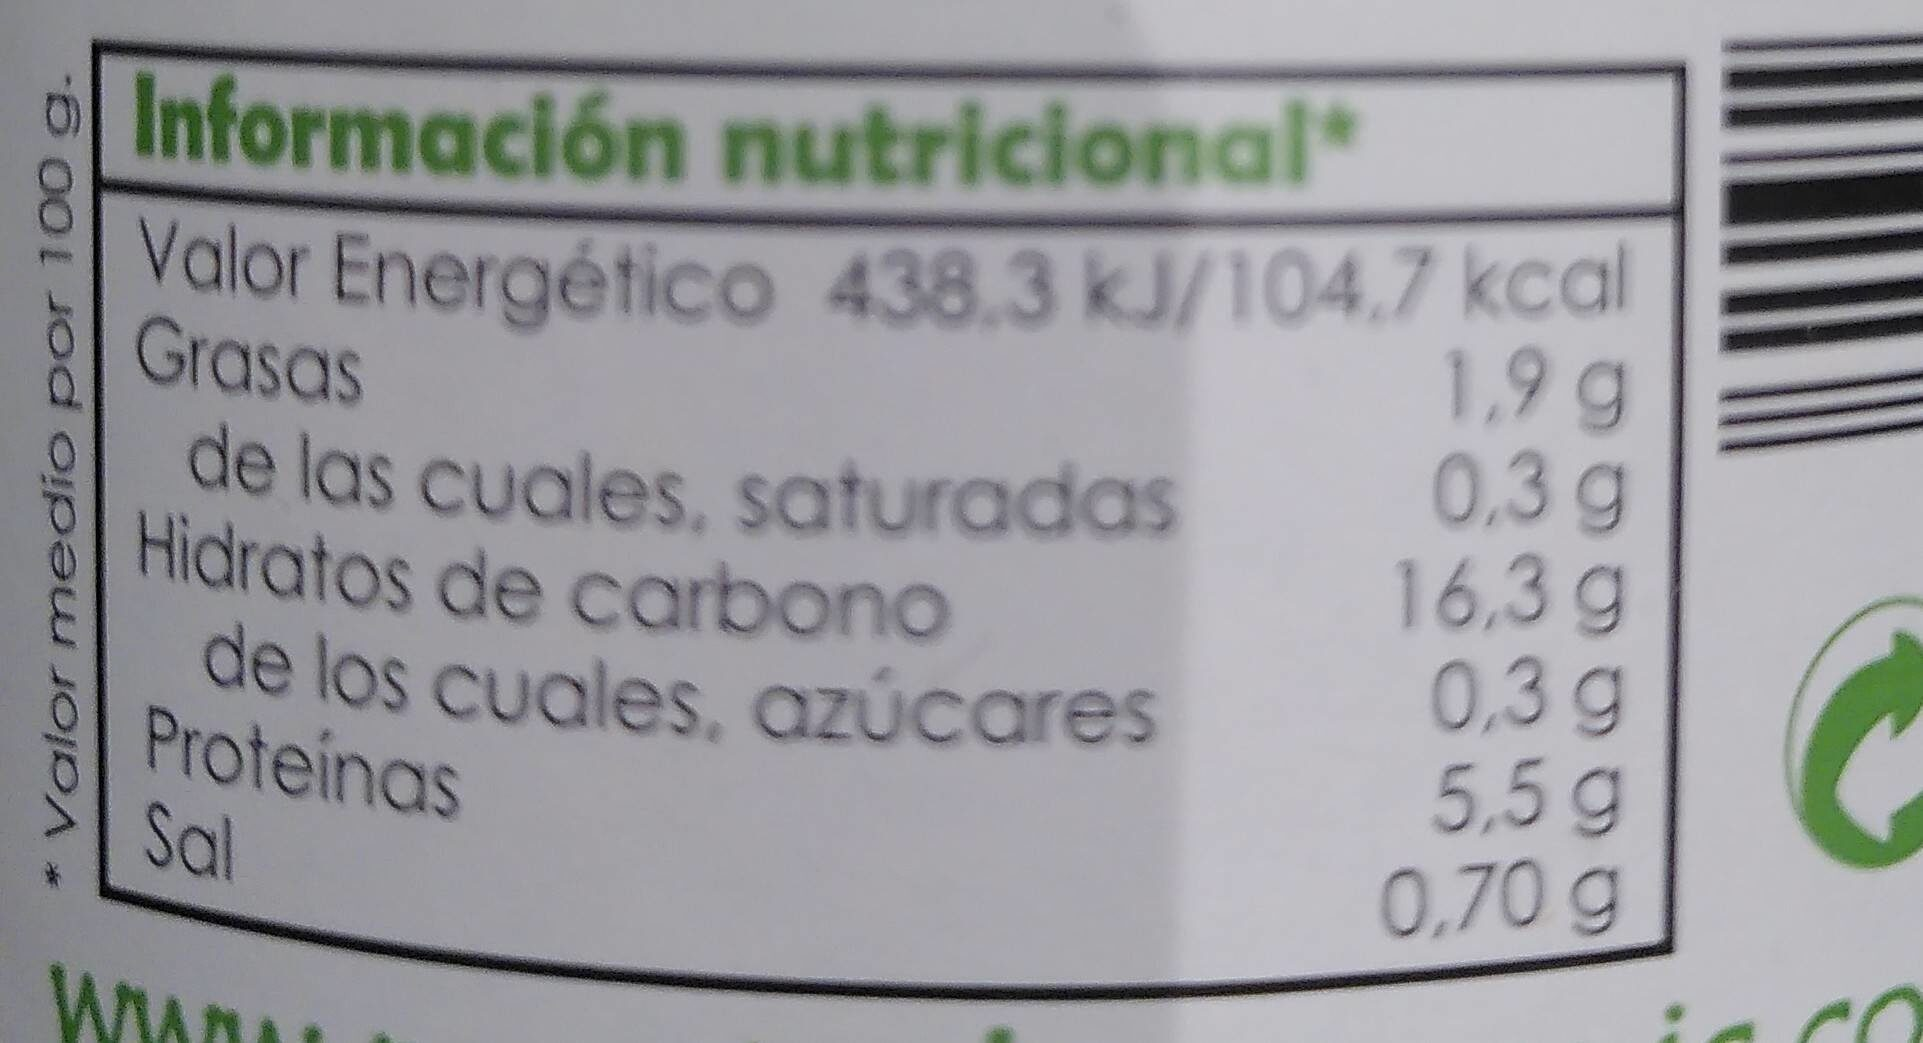 Garbanzos al natural de cultivo ecológico - Nutrition facts - fr